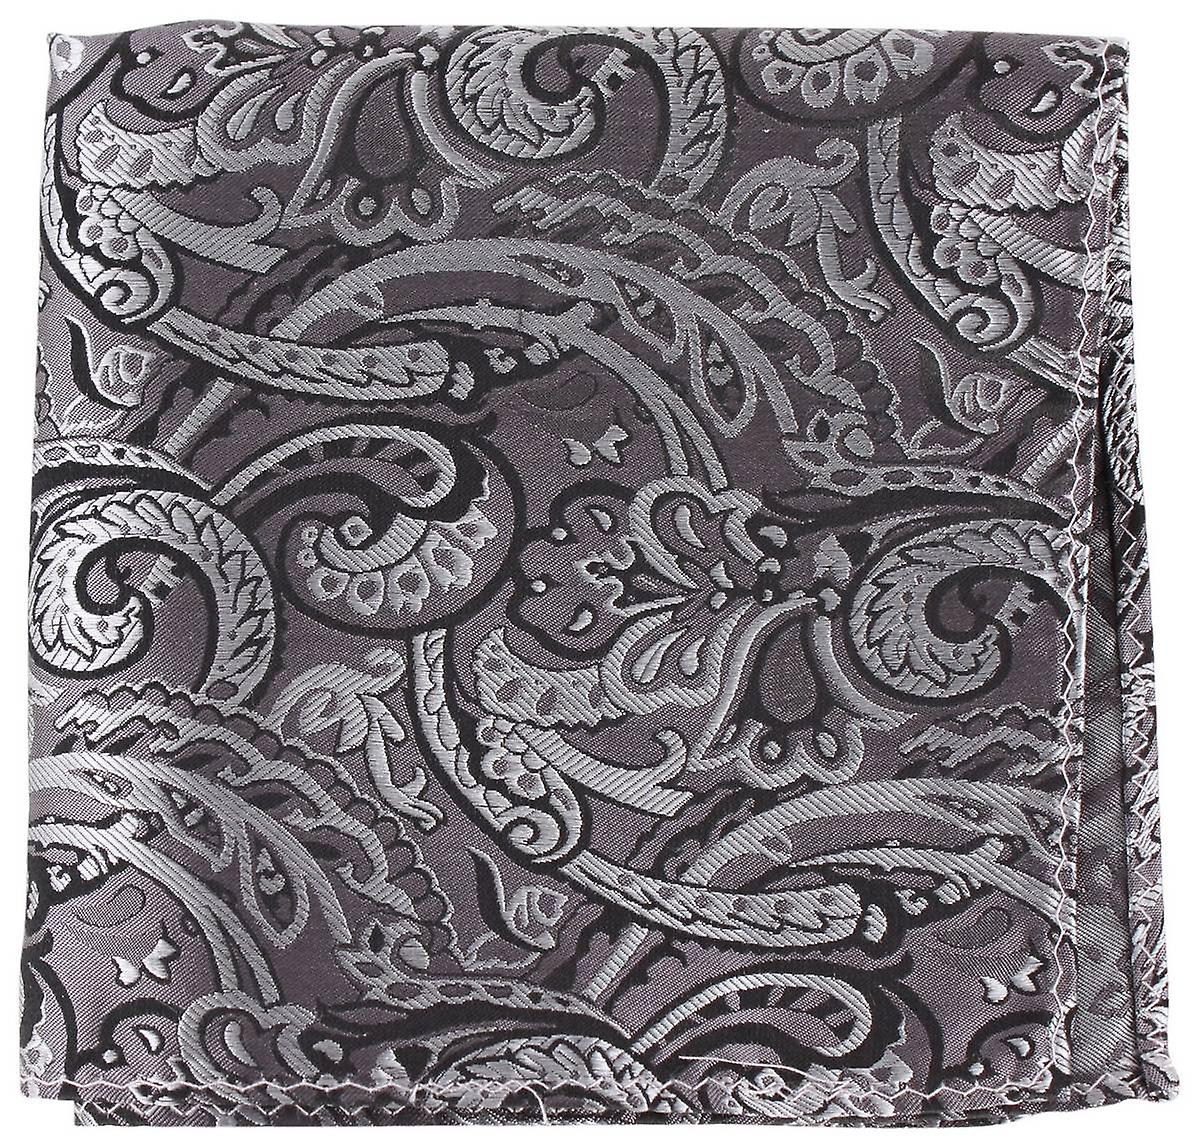 Knightsbridge Neckwear Paisley Silk Pocket Square - Black